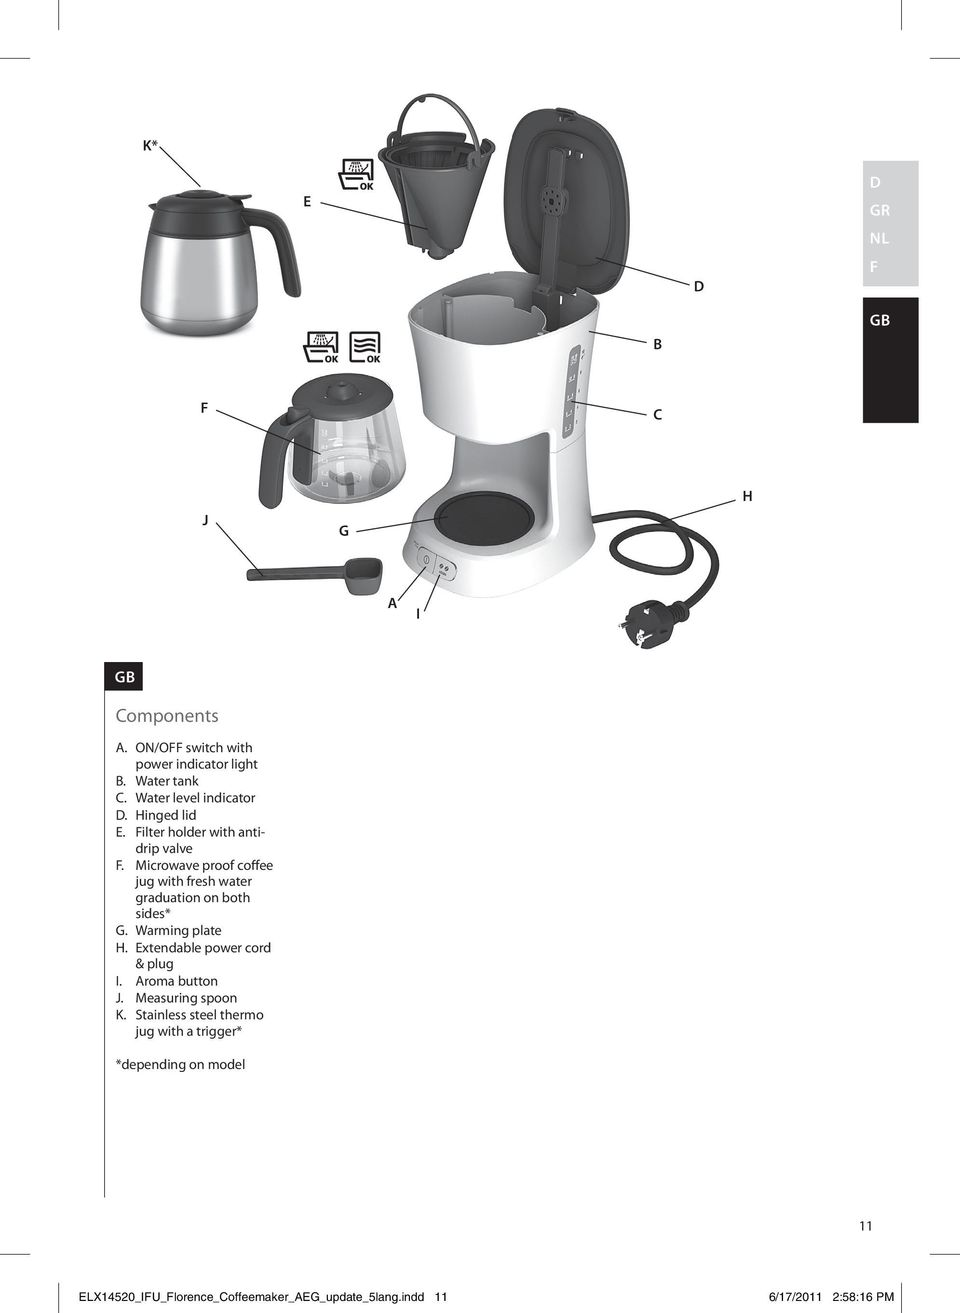 Microwave proof coffee jug with fresh water graduation on both sides* G. Warming plate H. Extendable power cord & plug I.